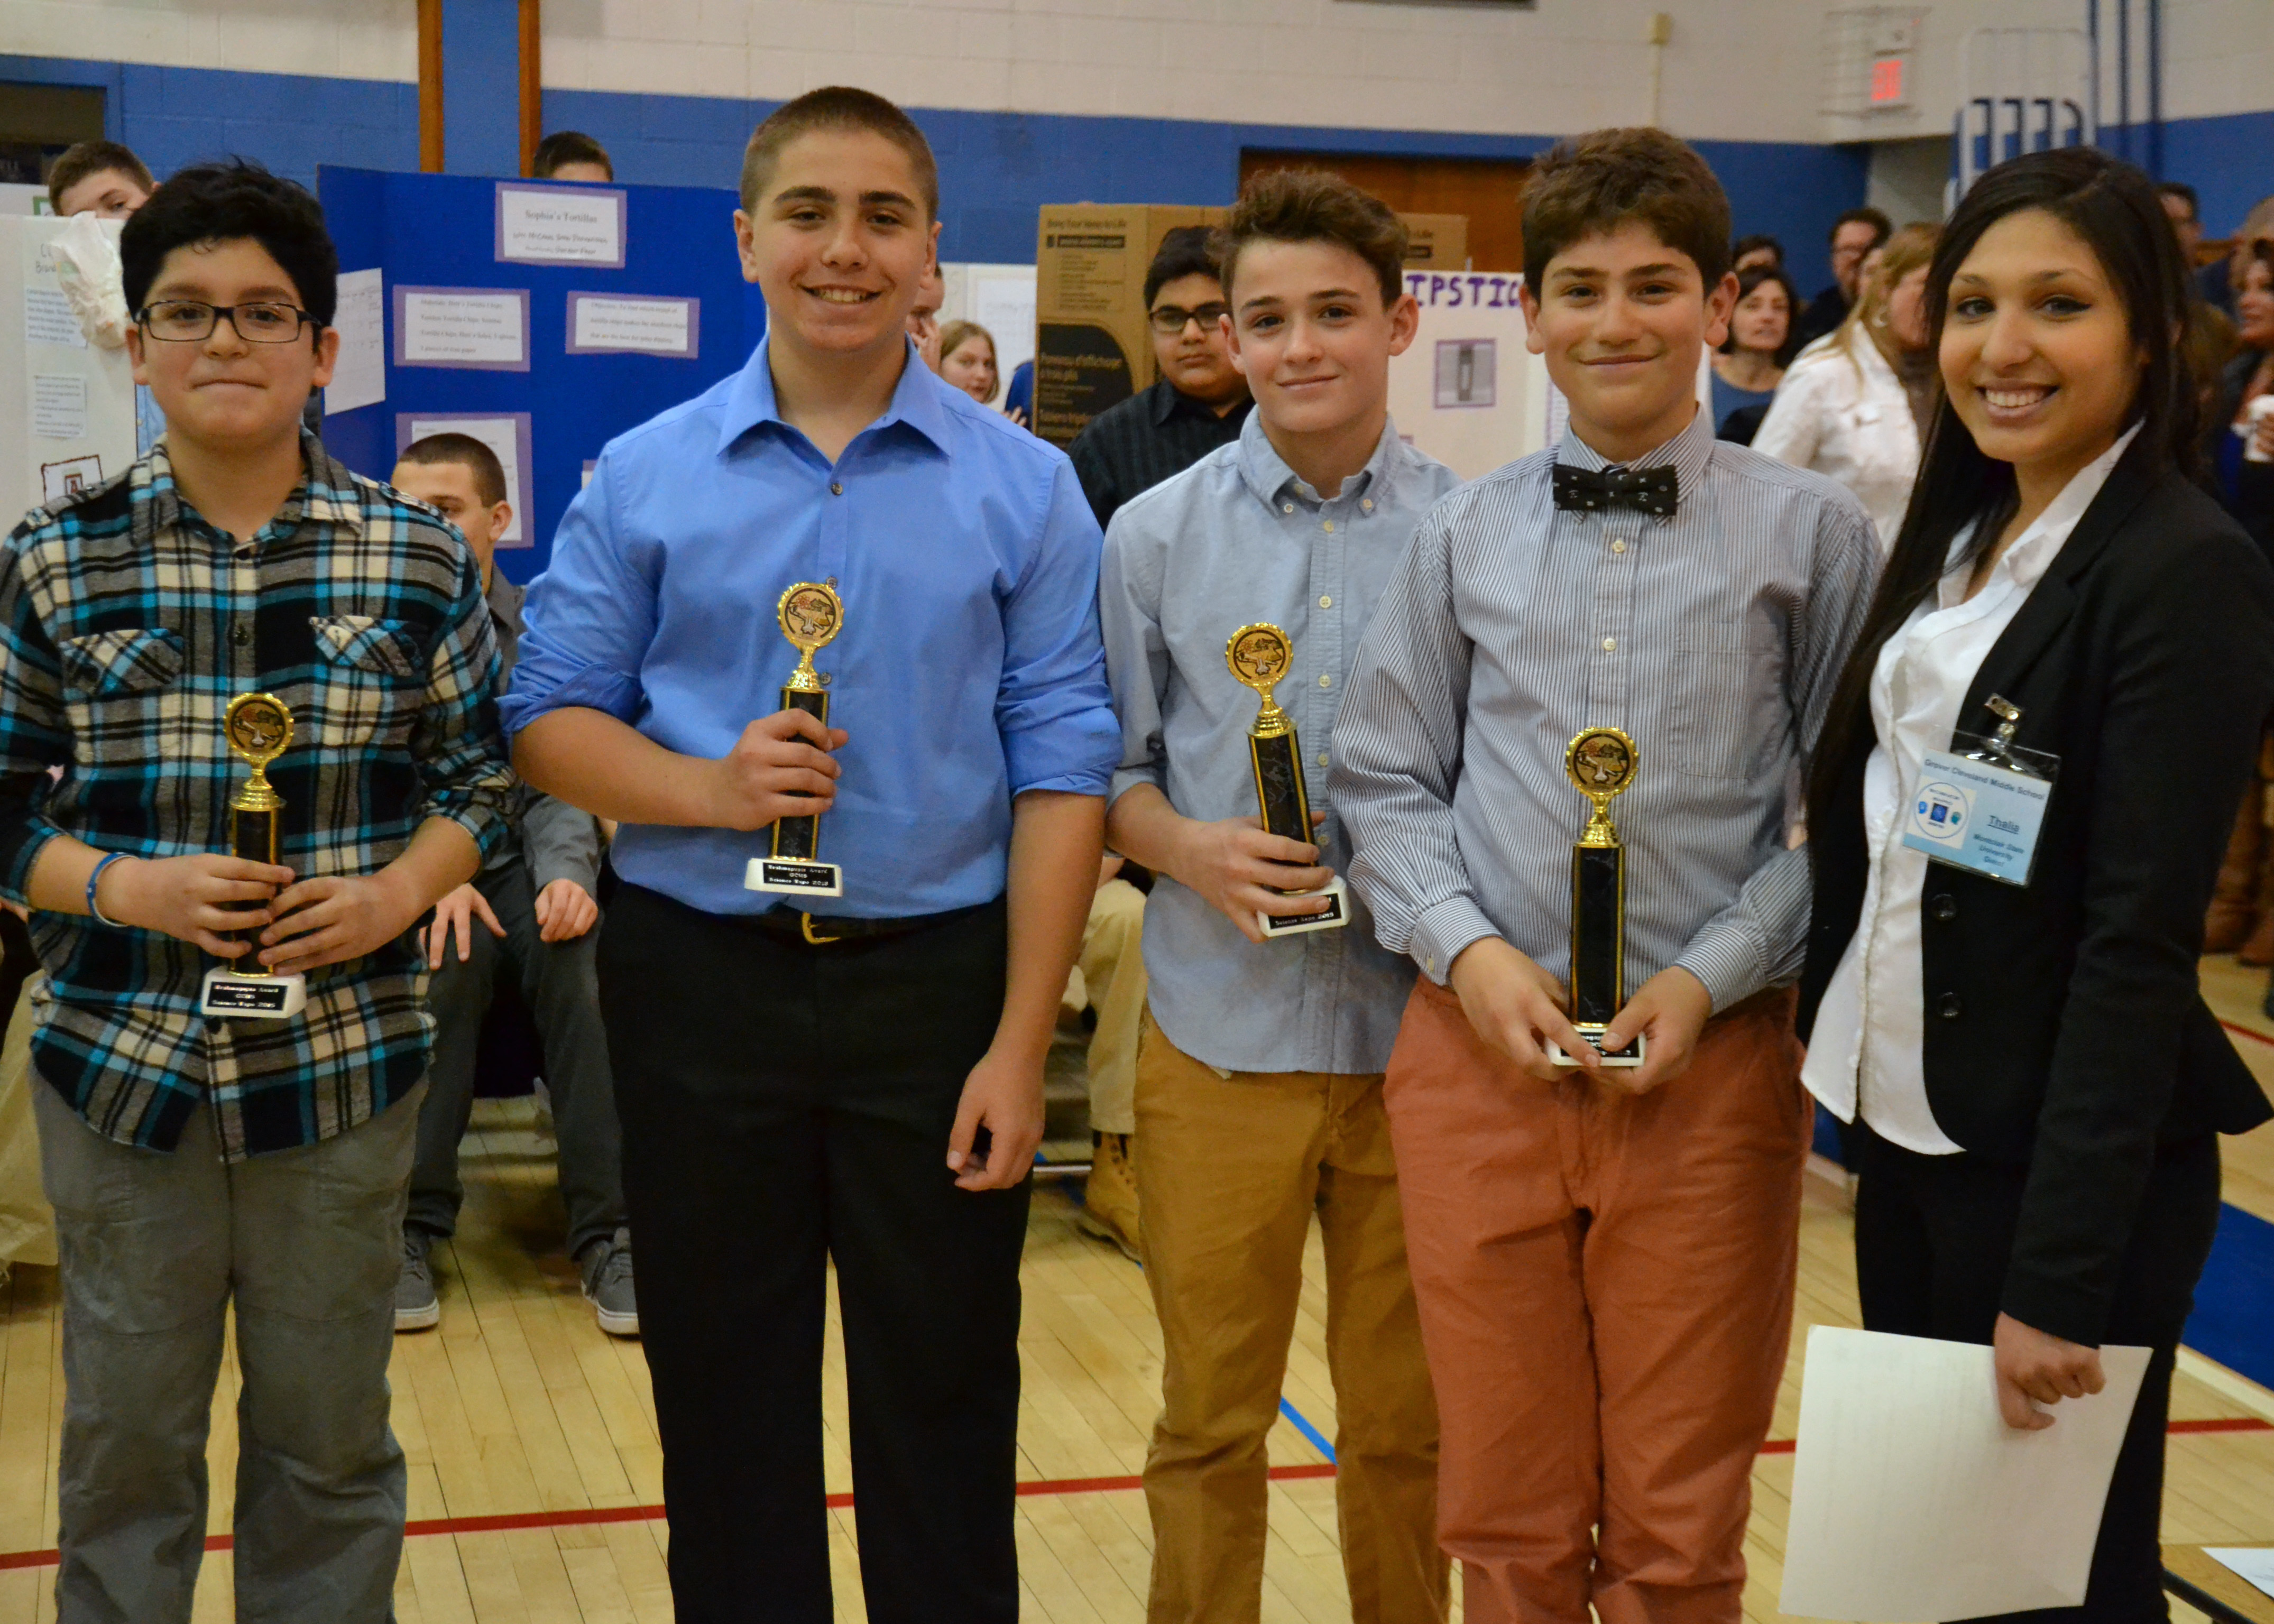 Grover Cleveland Students Win Awards at School's First Science ...